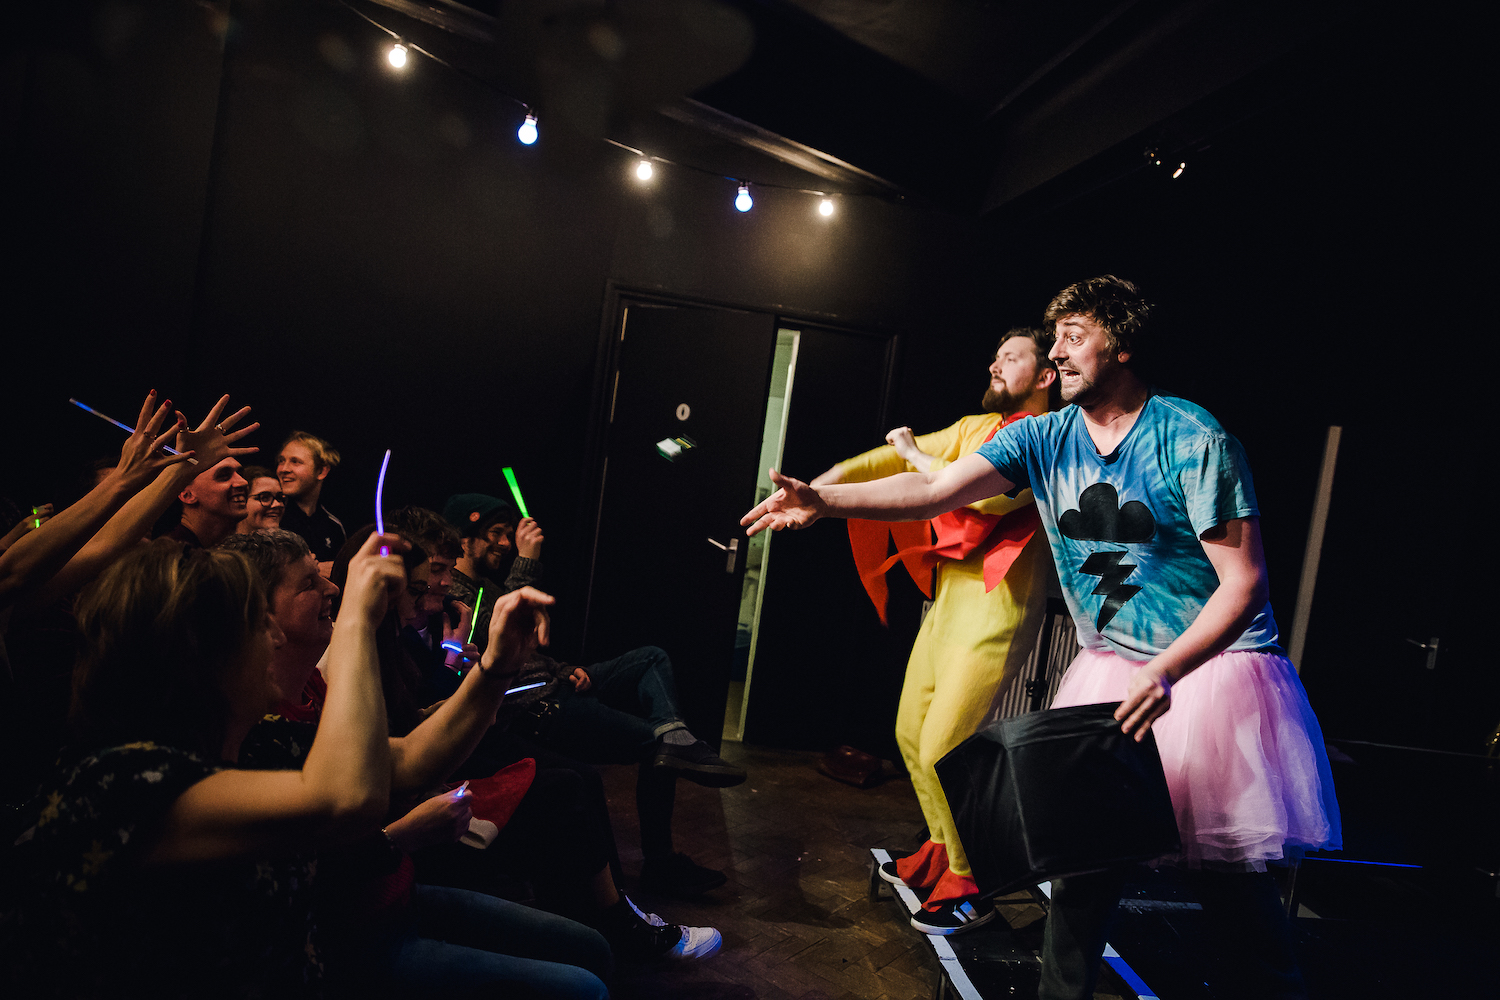 Two men in fancy dress stand on stage and point at a cheering audience